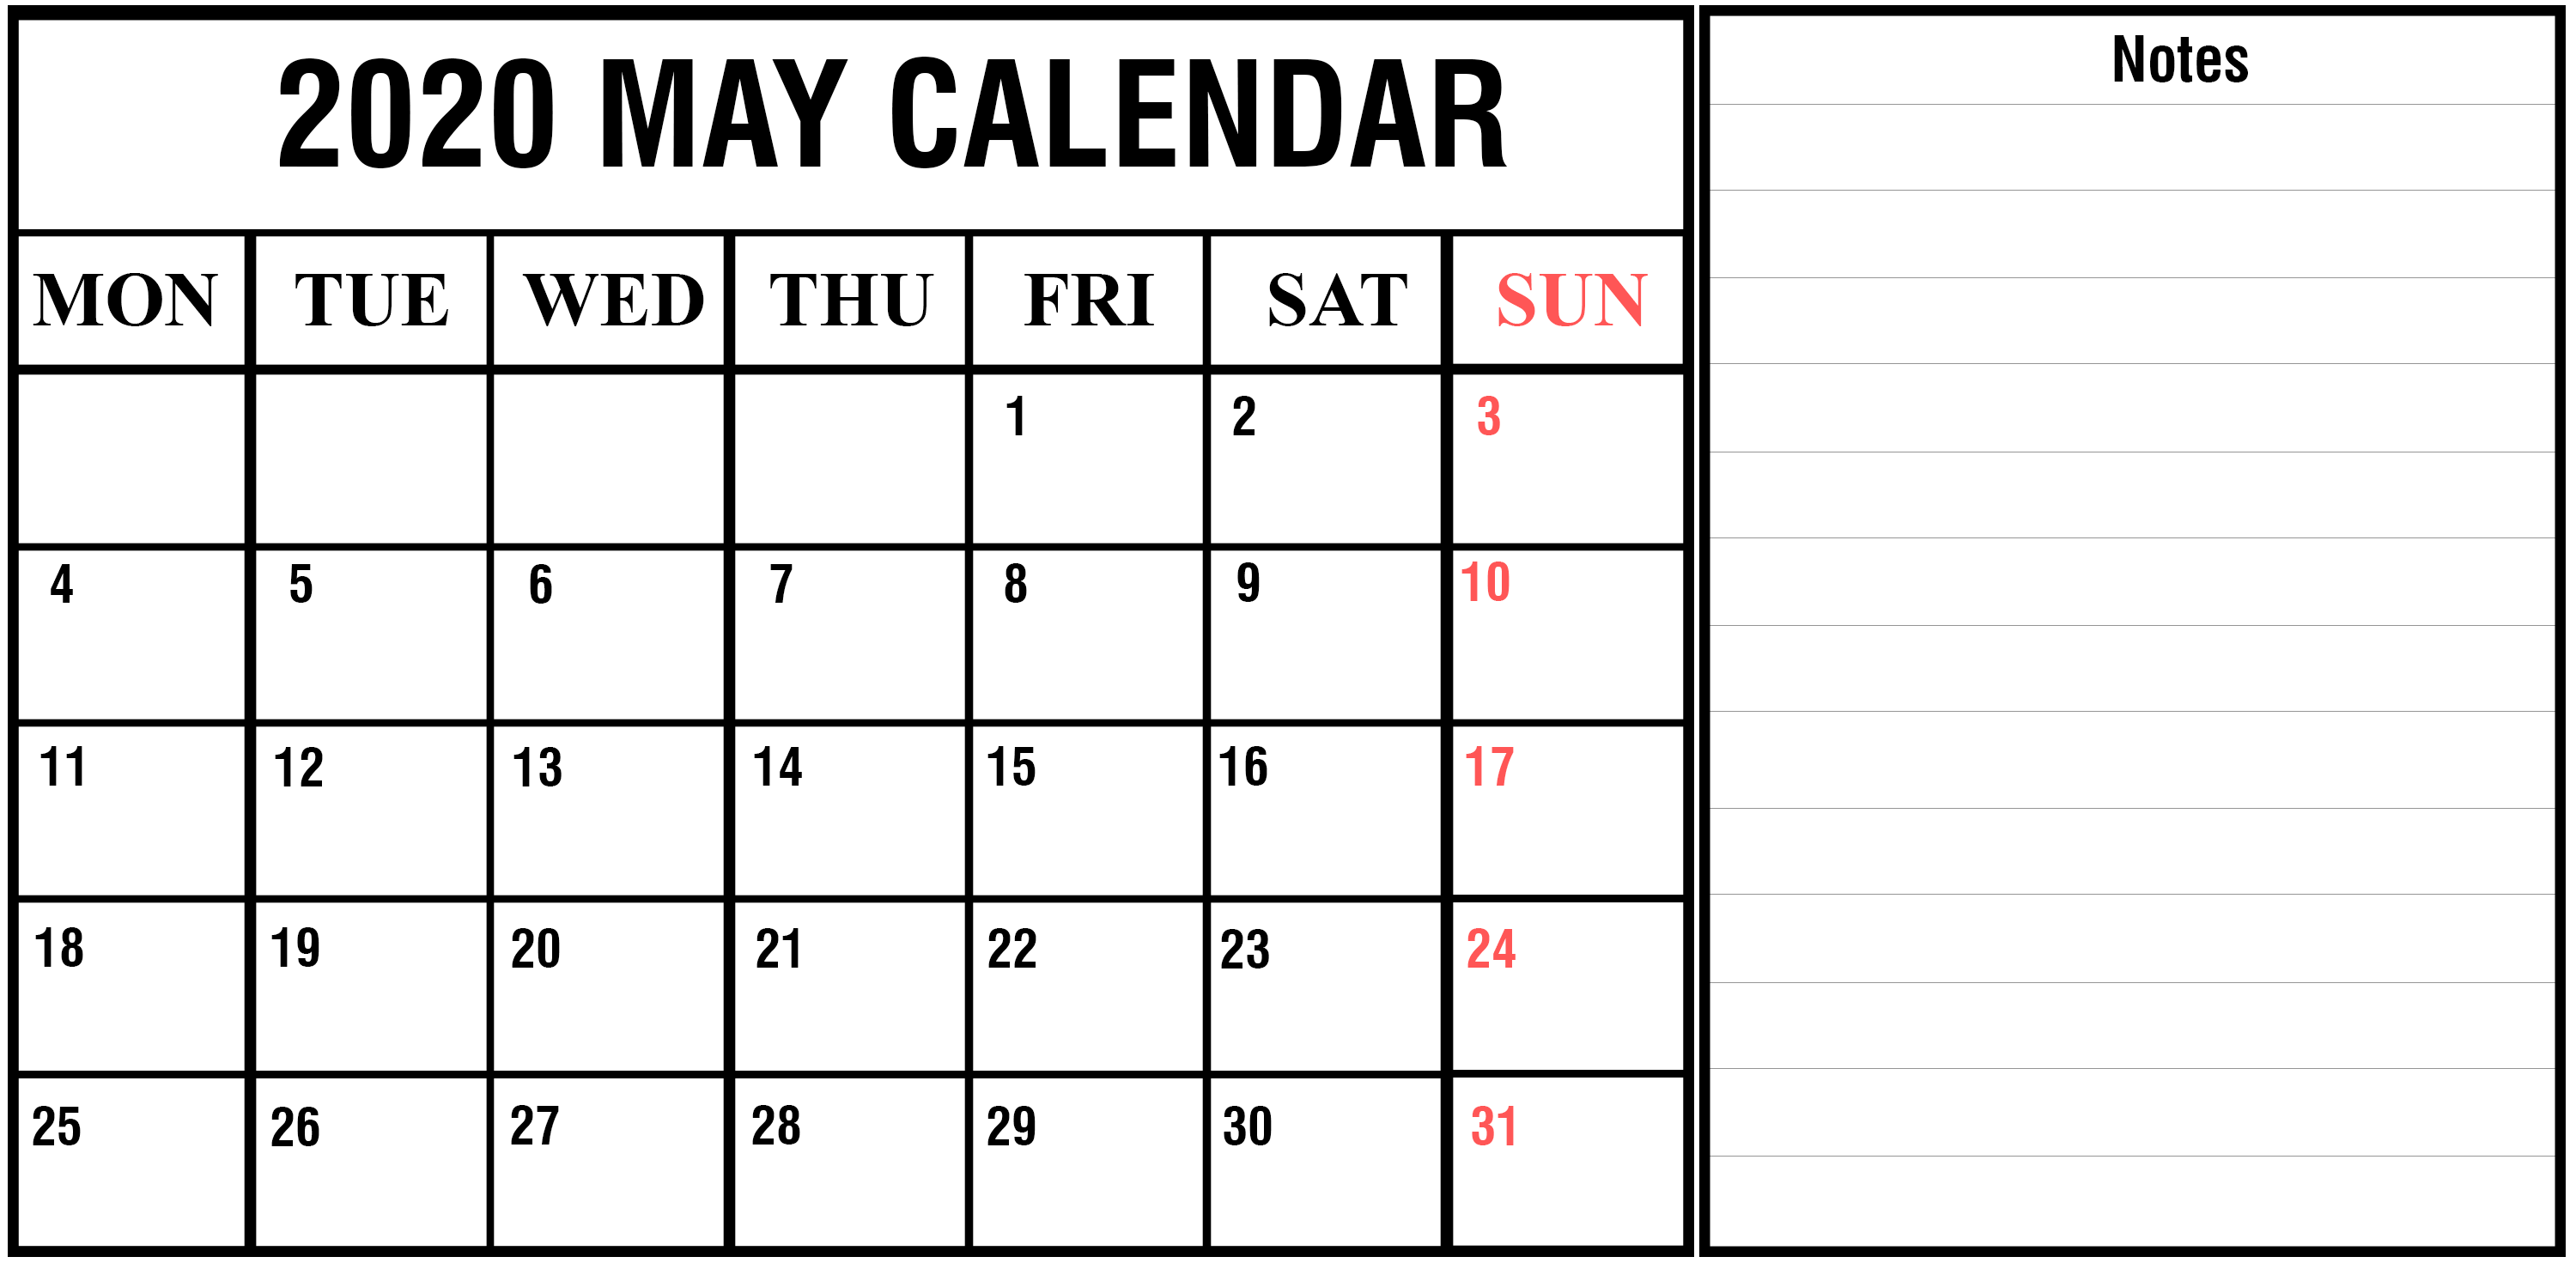 May 2020 Calendar with Notes